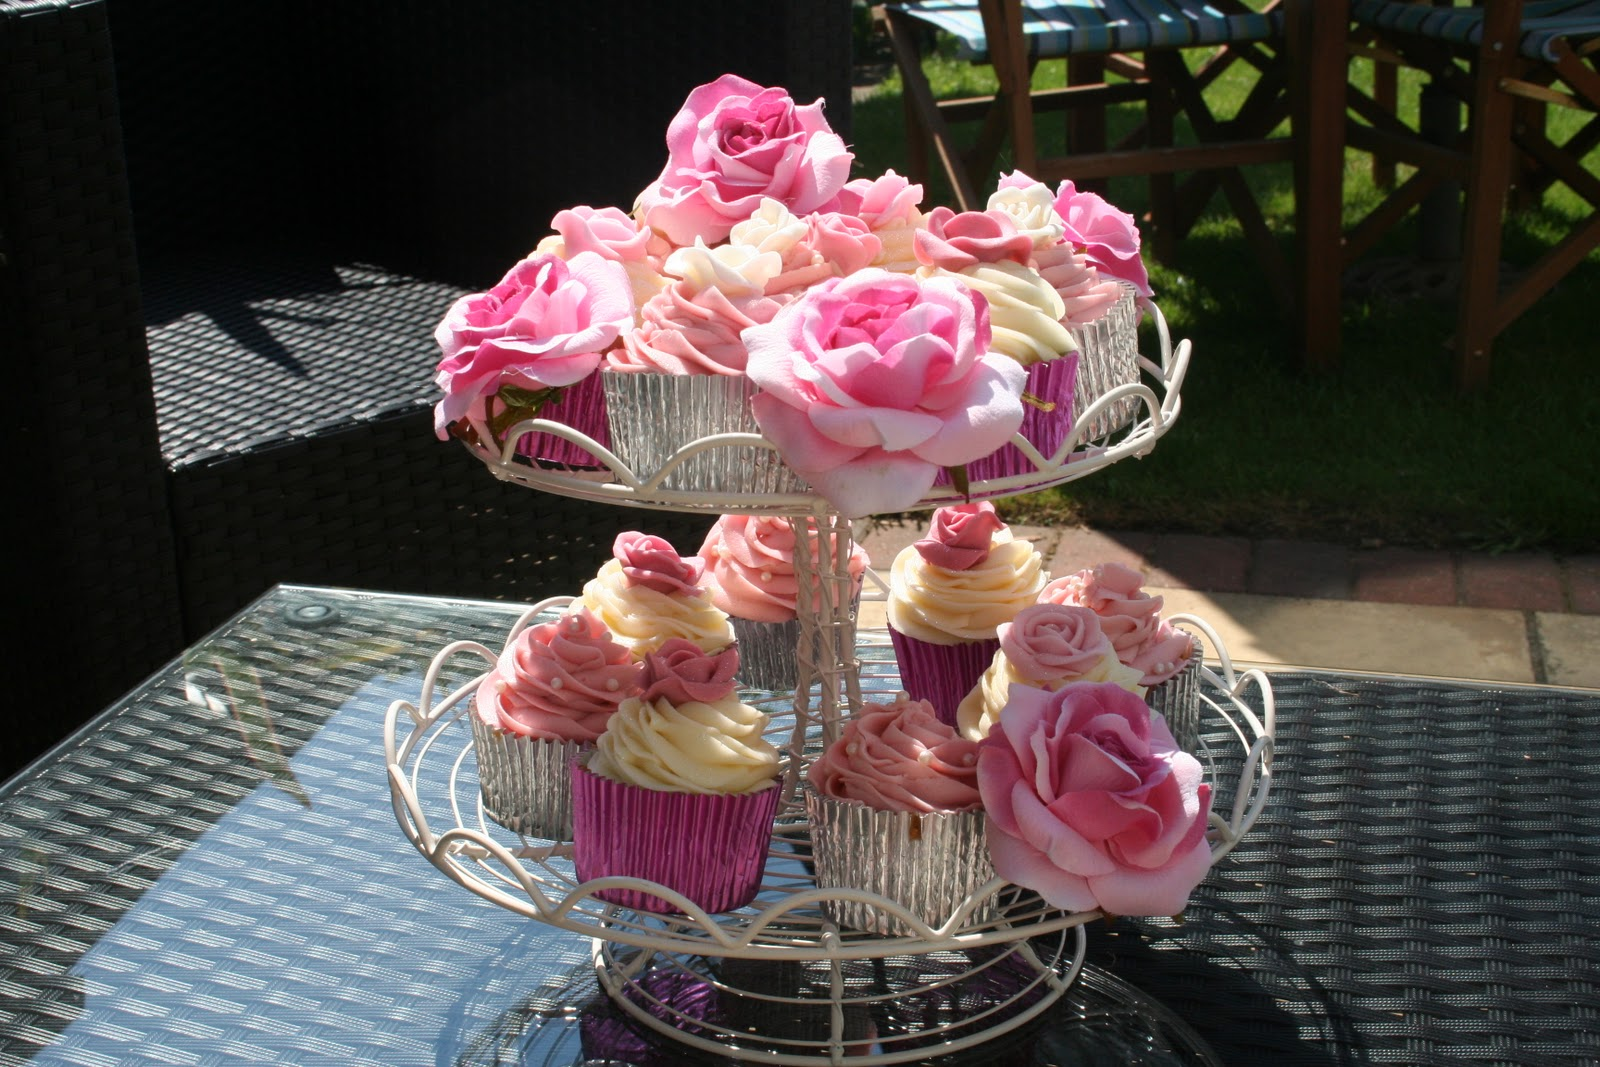 Mothers day cupcake decorating ideas displaying 15 images for mothers